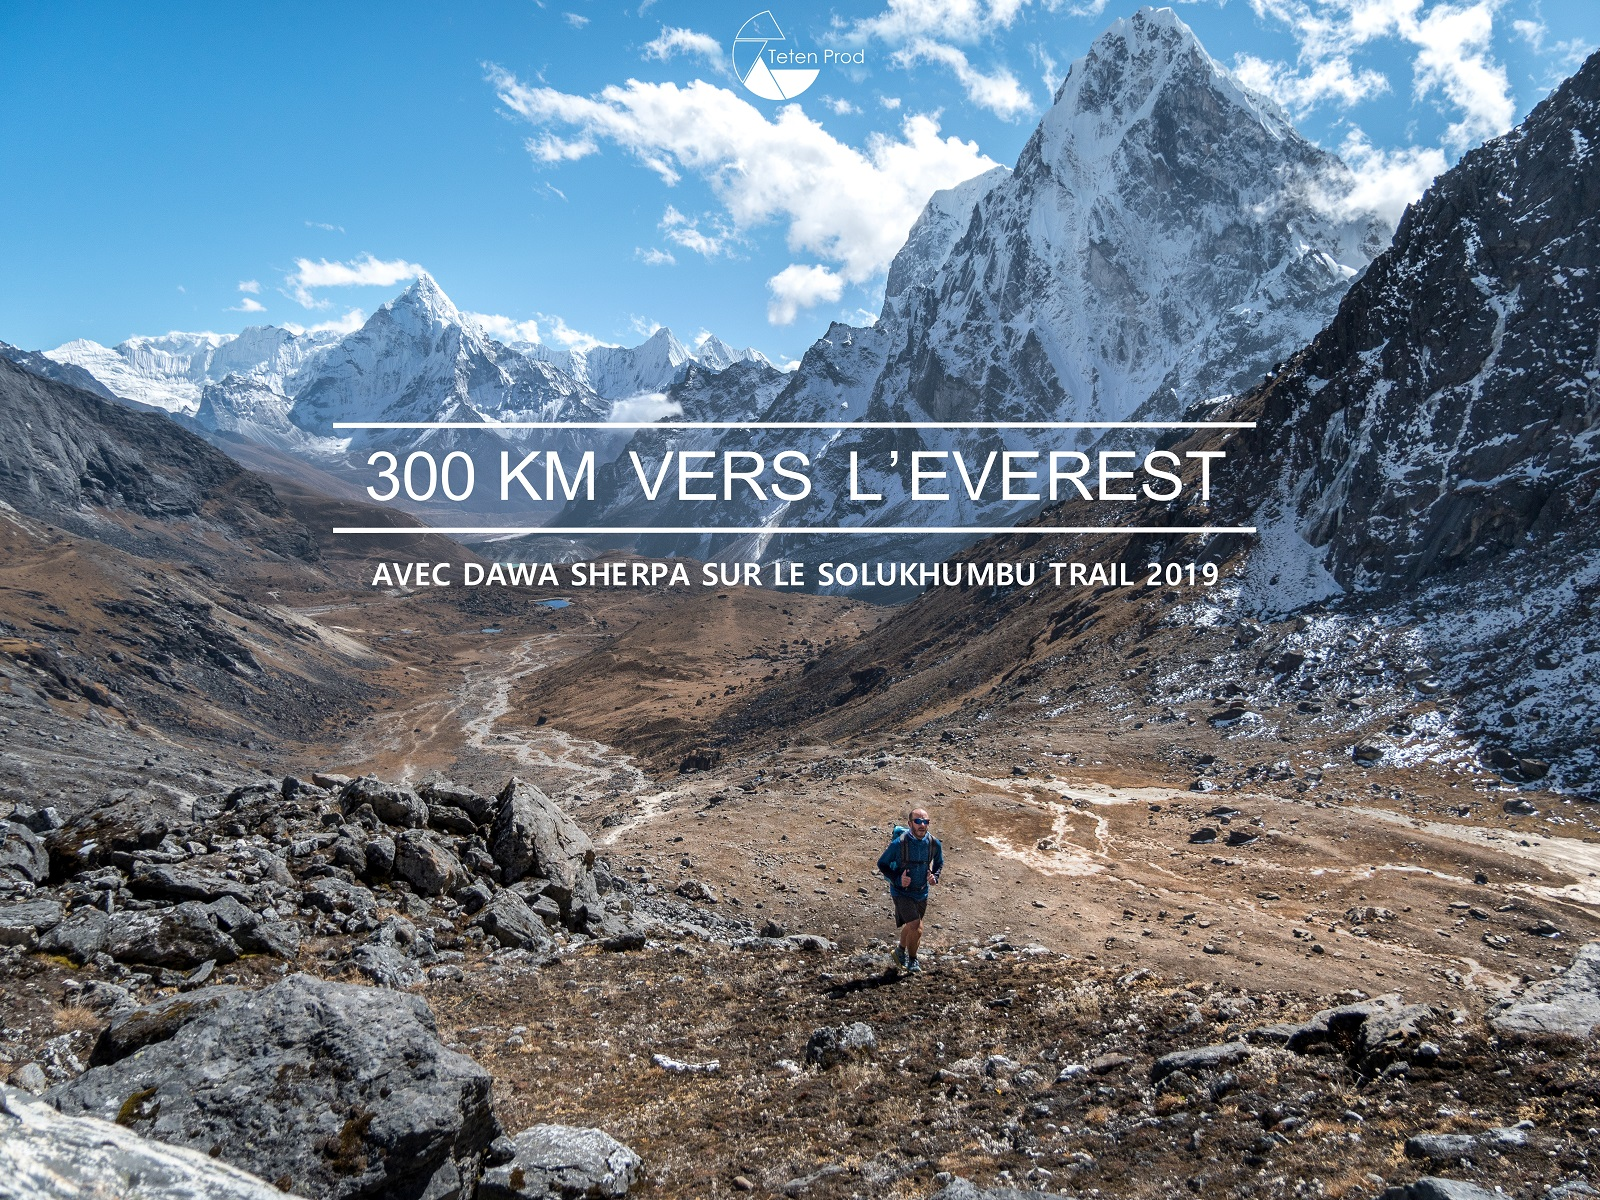 300 km vers l'Everest